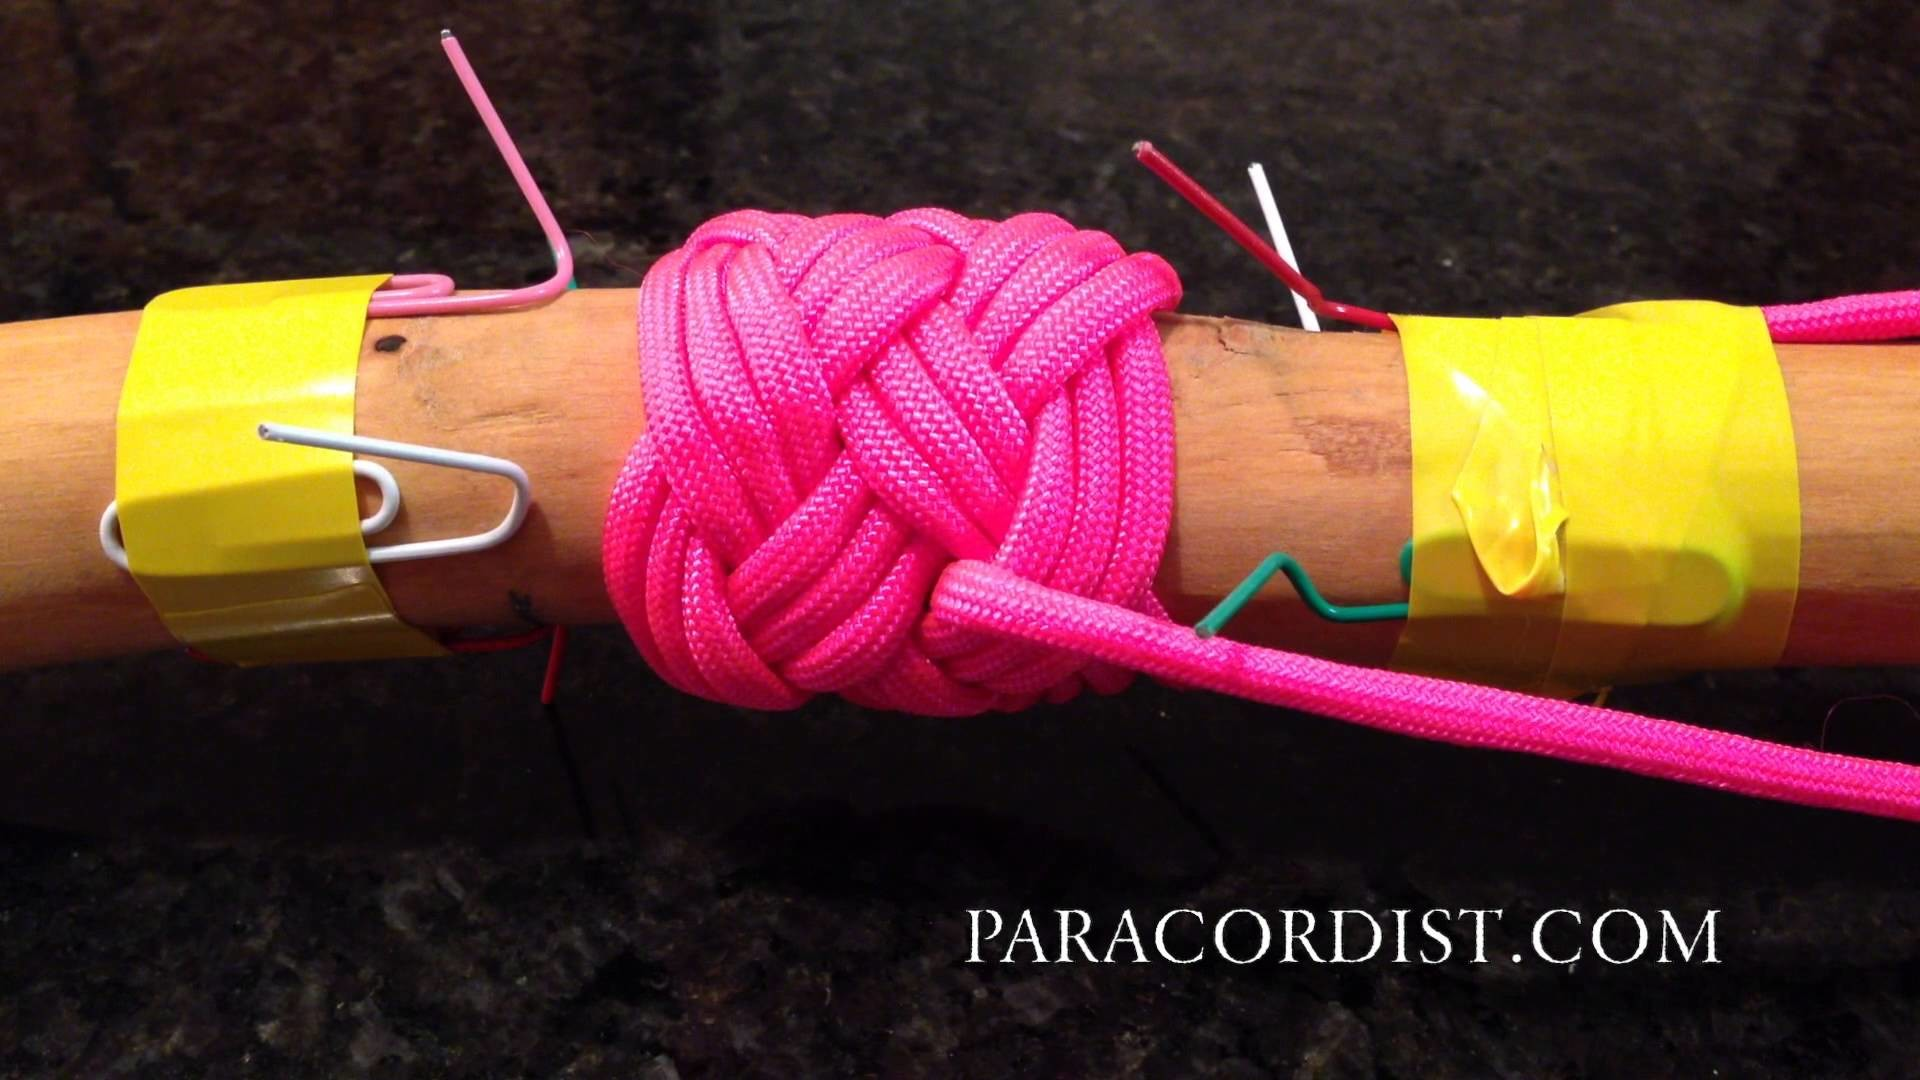 Paracordist How to Plan Turks Head Paracord Handle Wrap Project - Leads? Bights? Length of Cord?